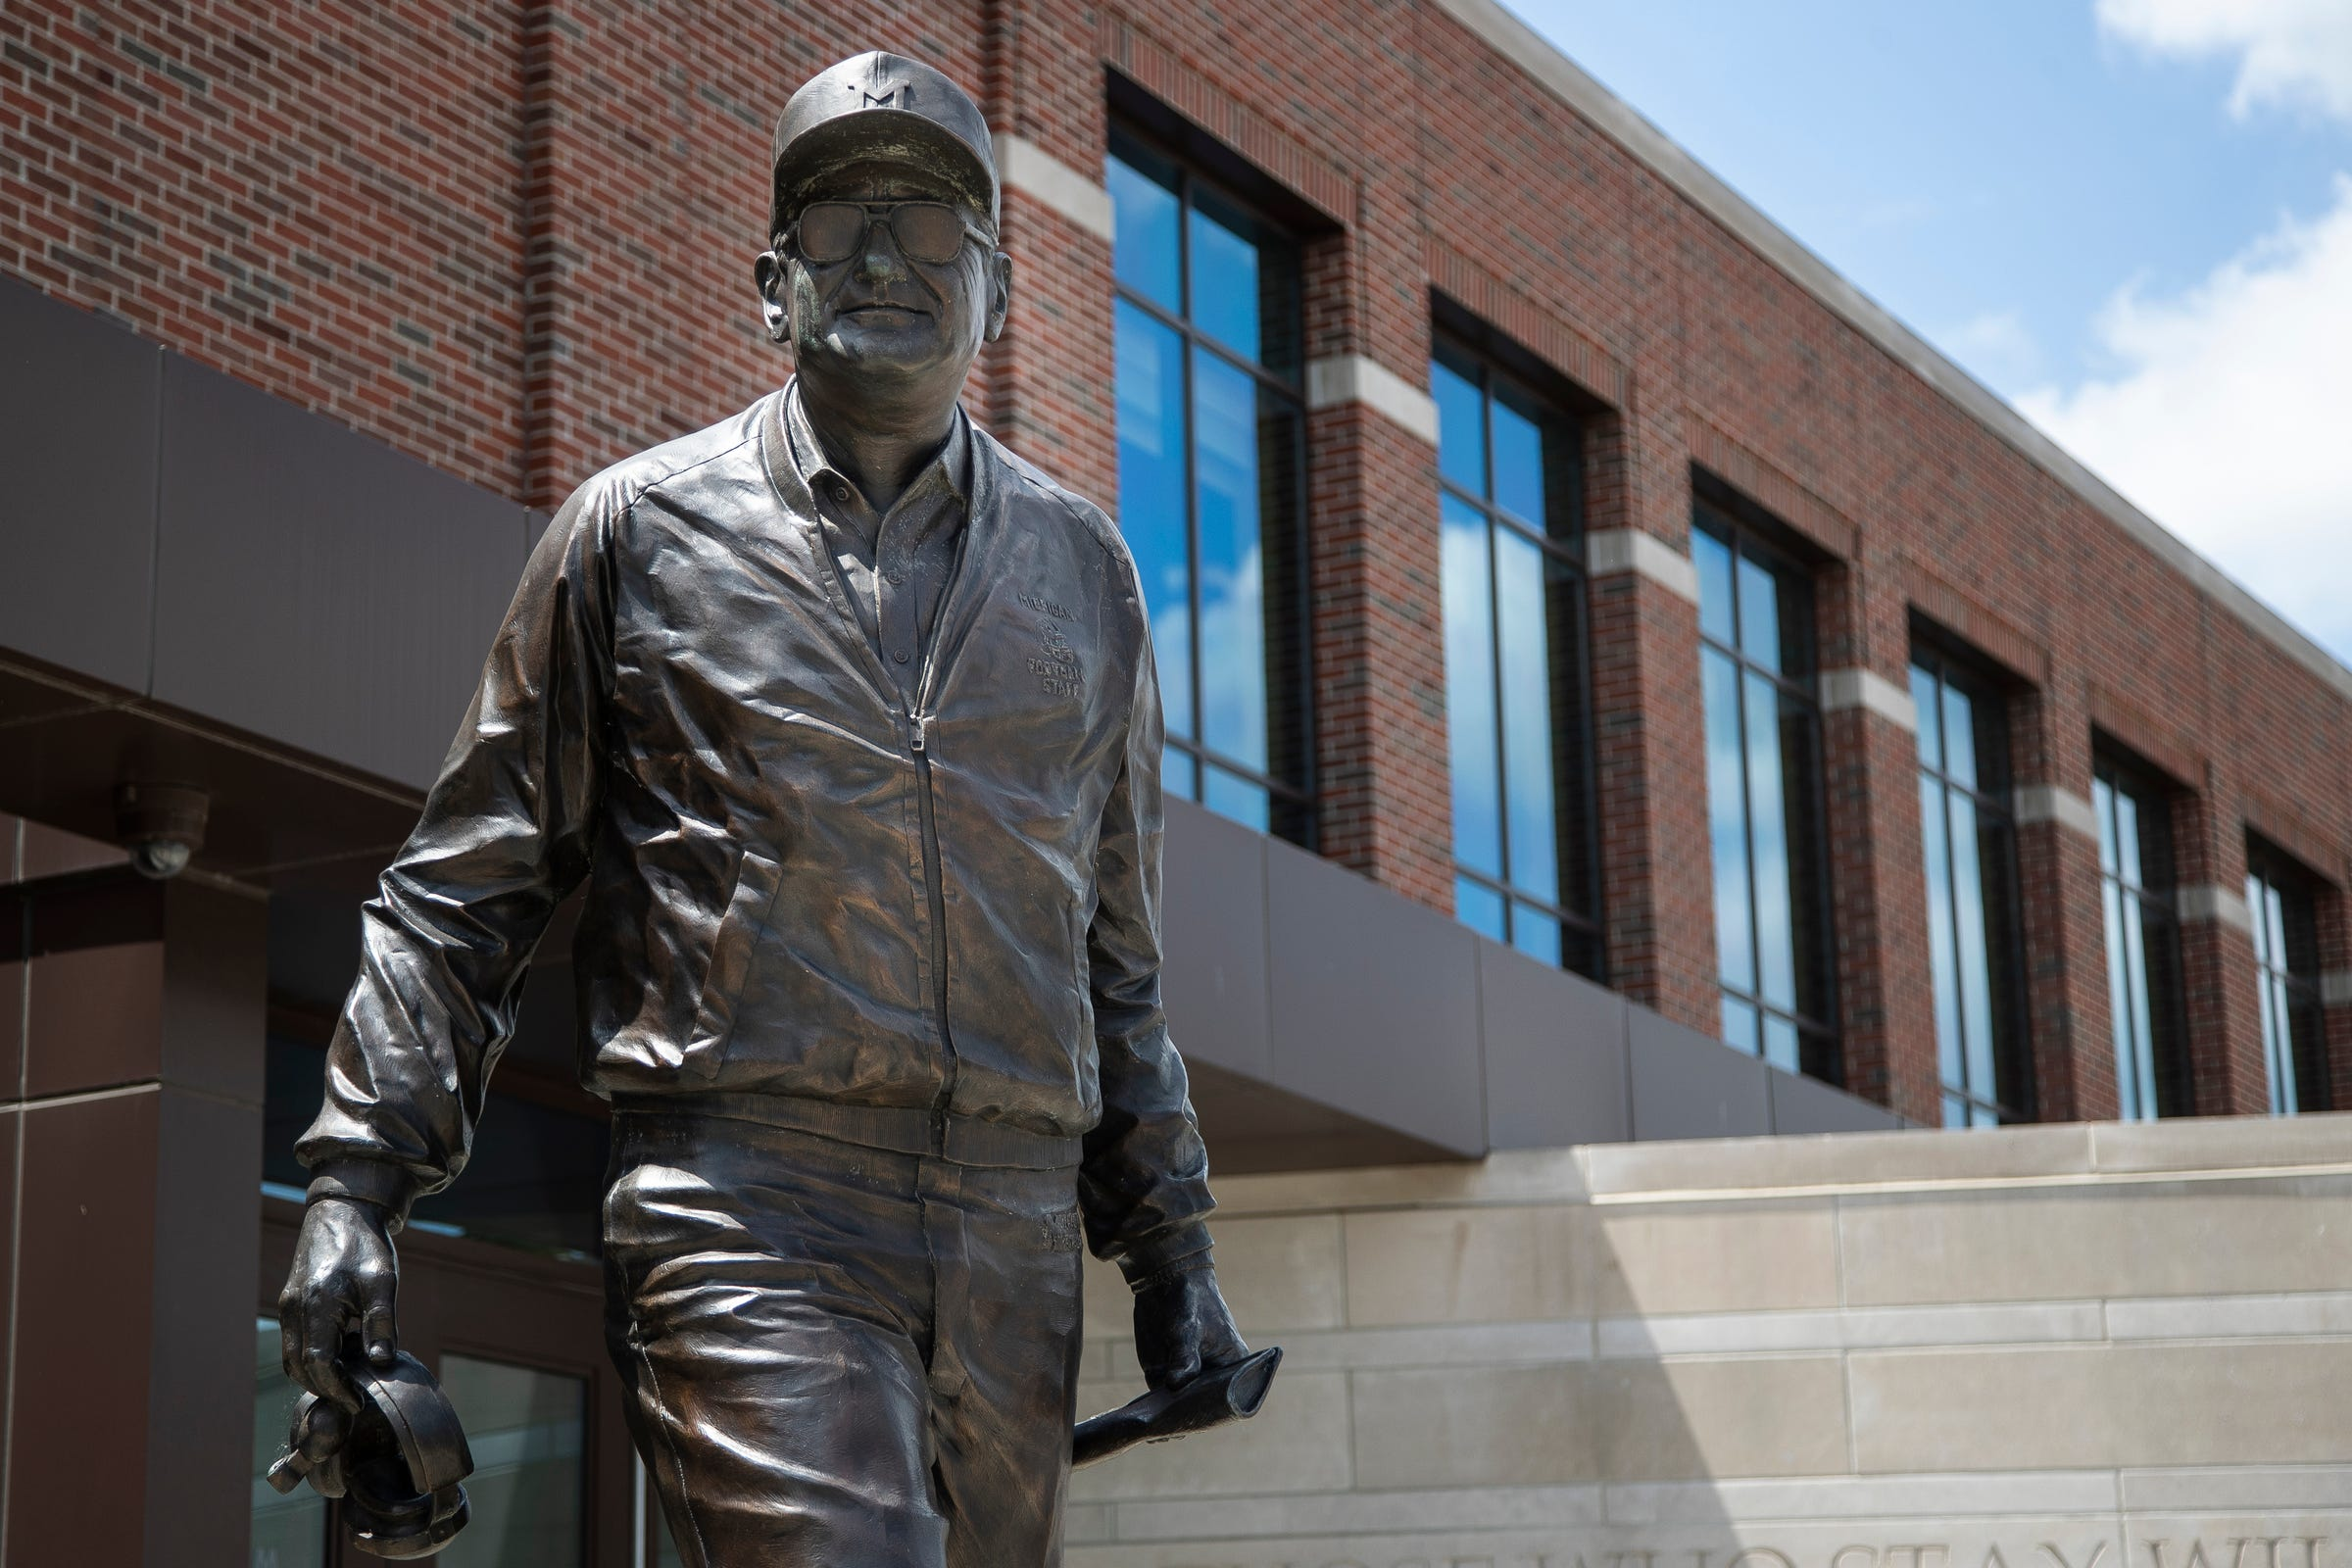 Matt Schembechler, former Michigan players call for accountability. Will Bo s statue stay?